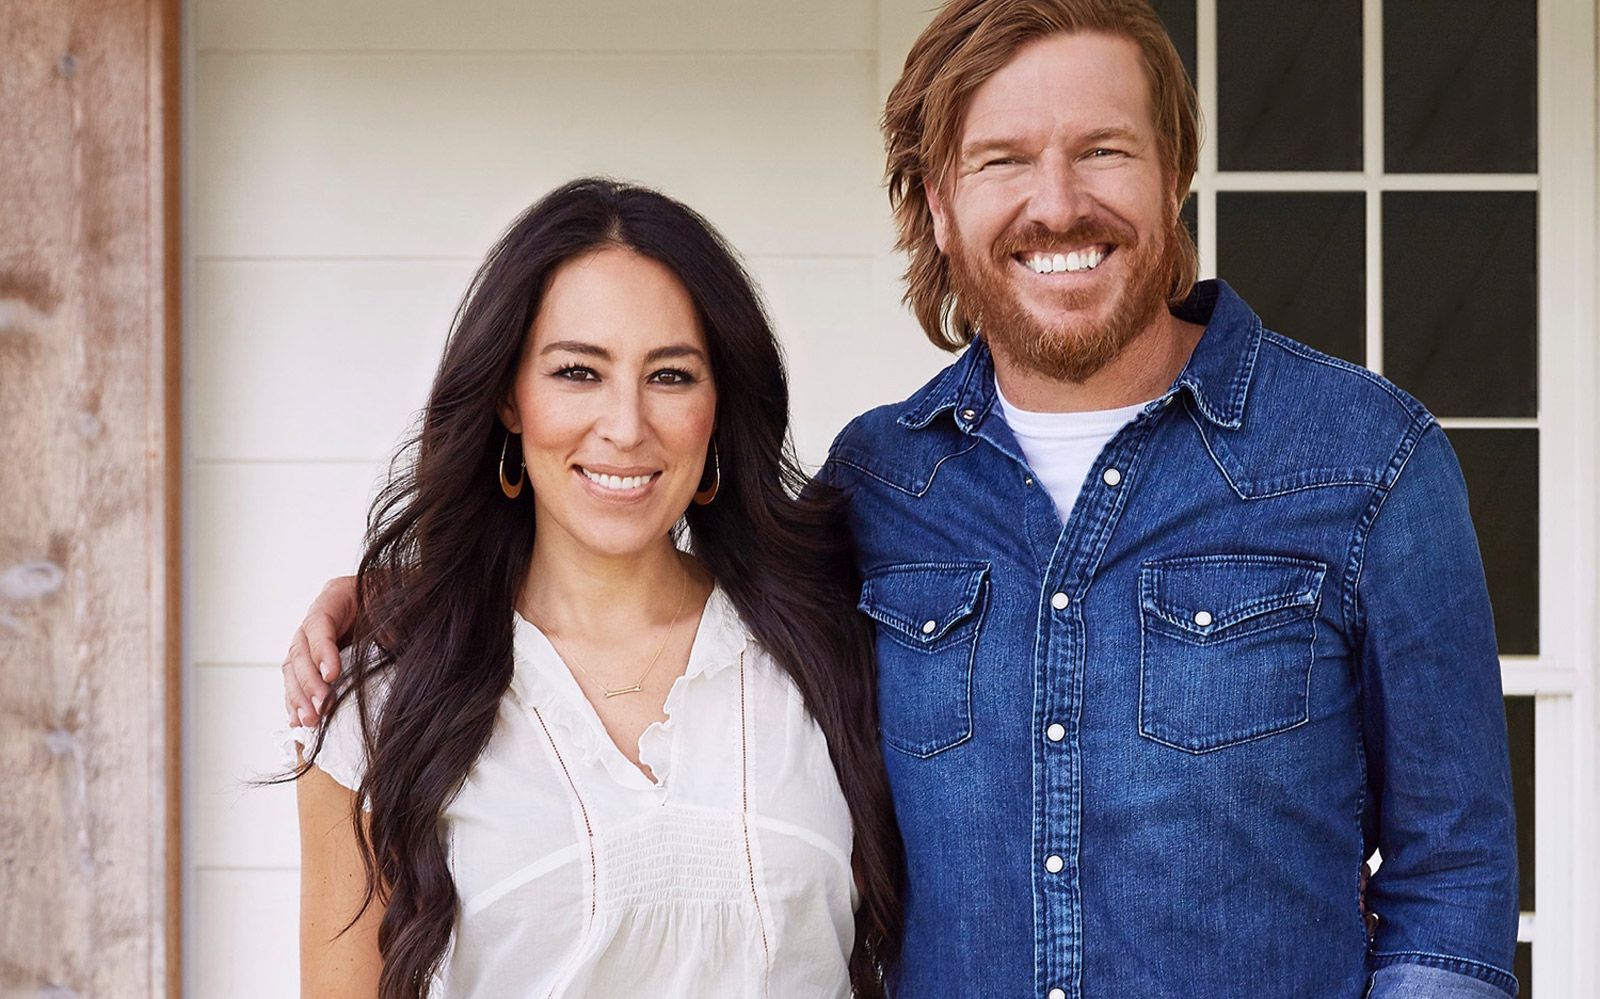 Fixer Upper's Chip and Joanna Gaines Designed New Brand at Target